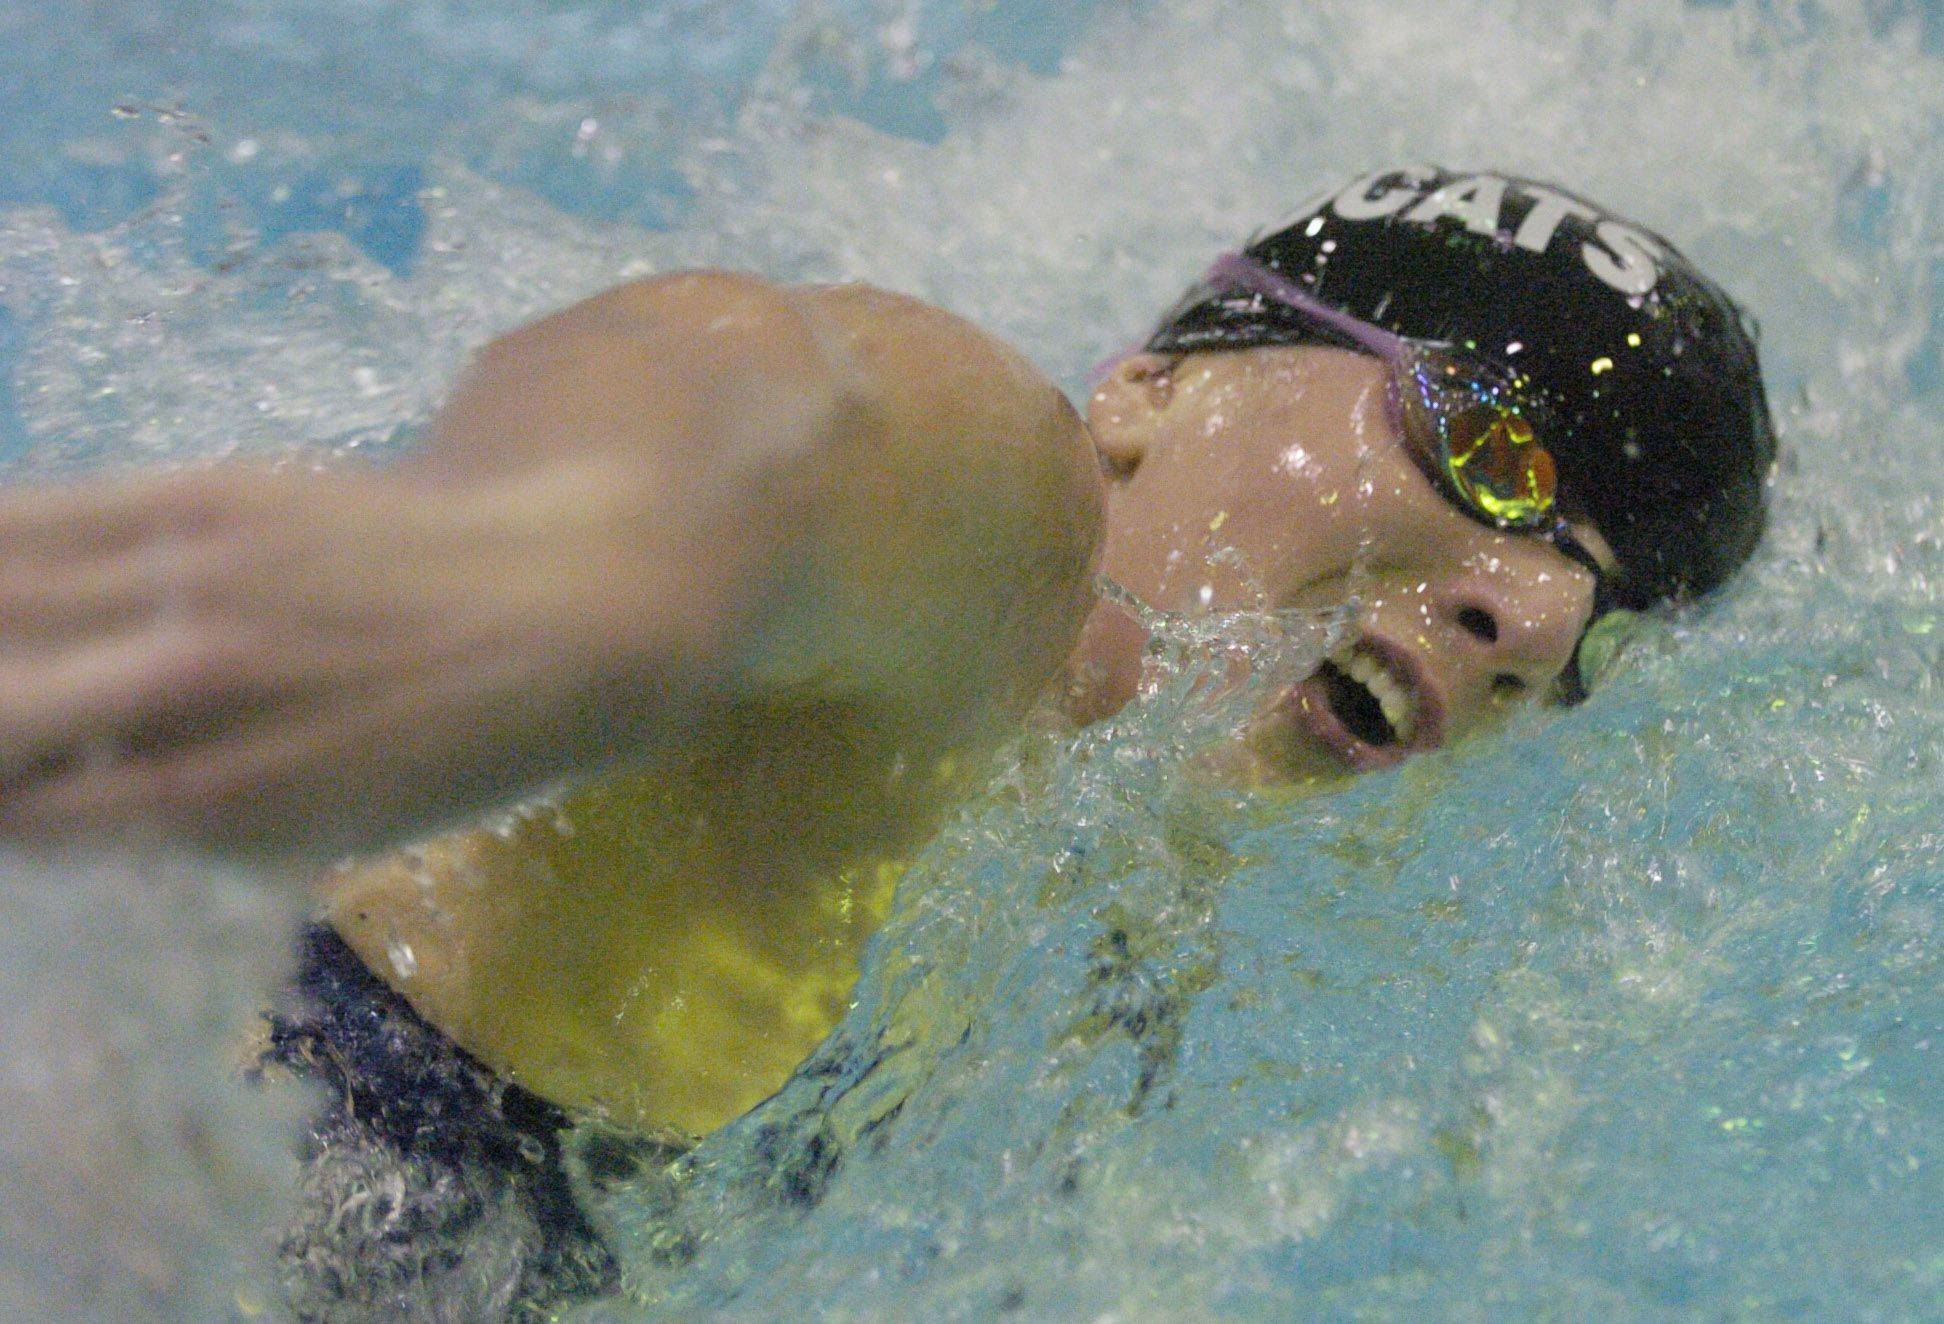 Kelly Dunn of West Chicago swims the 200-yard freestyle during Saturday's state swimming finals at Evanston.